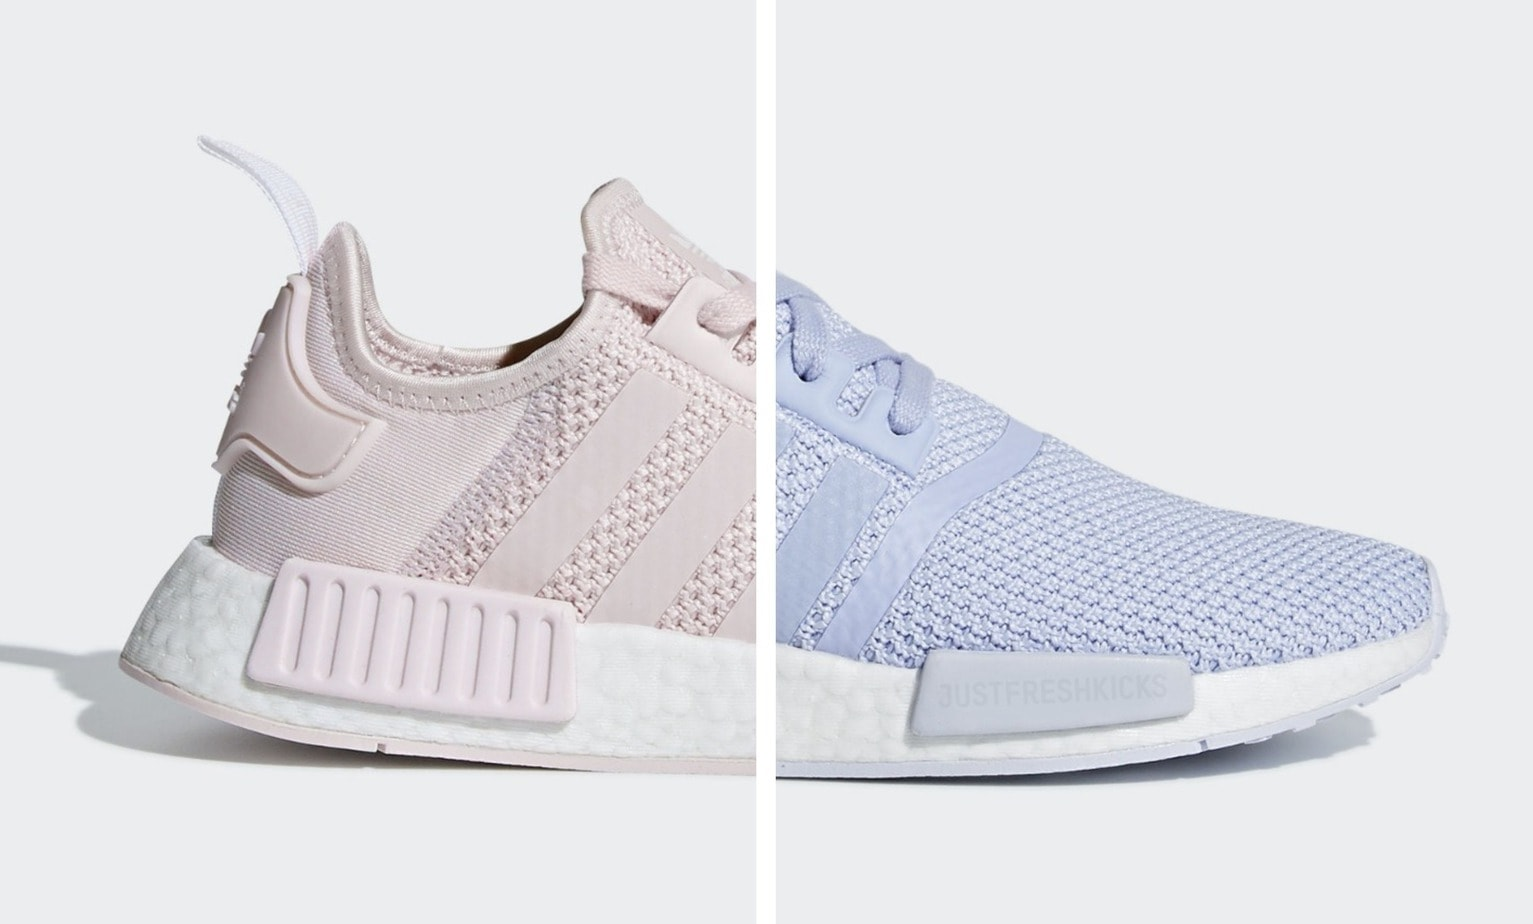 adidas is showing plenty of love for their female fans this year. With a  new silhouette and plenty of colorways abound 9bea625b9